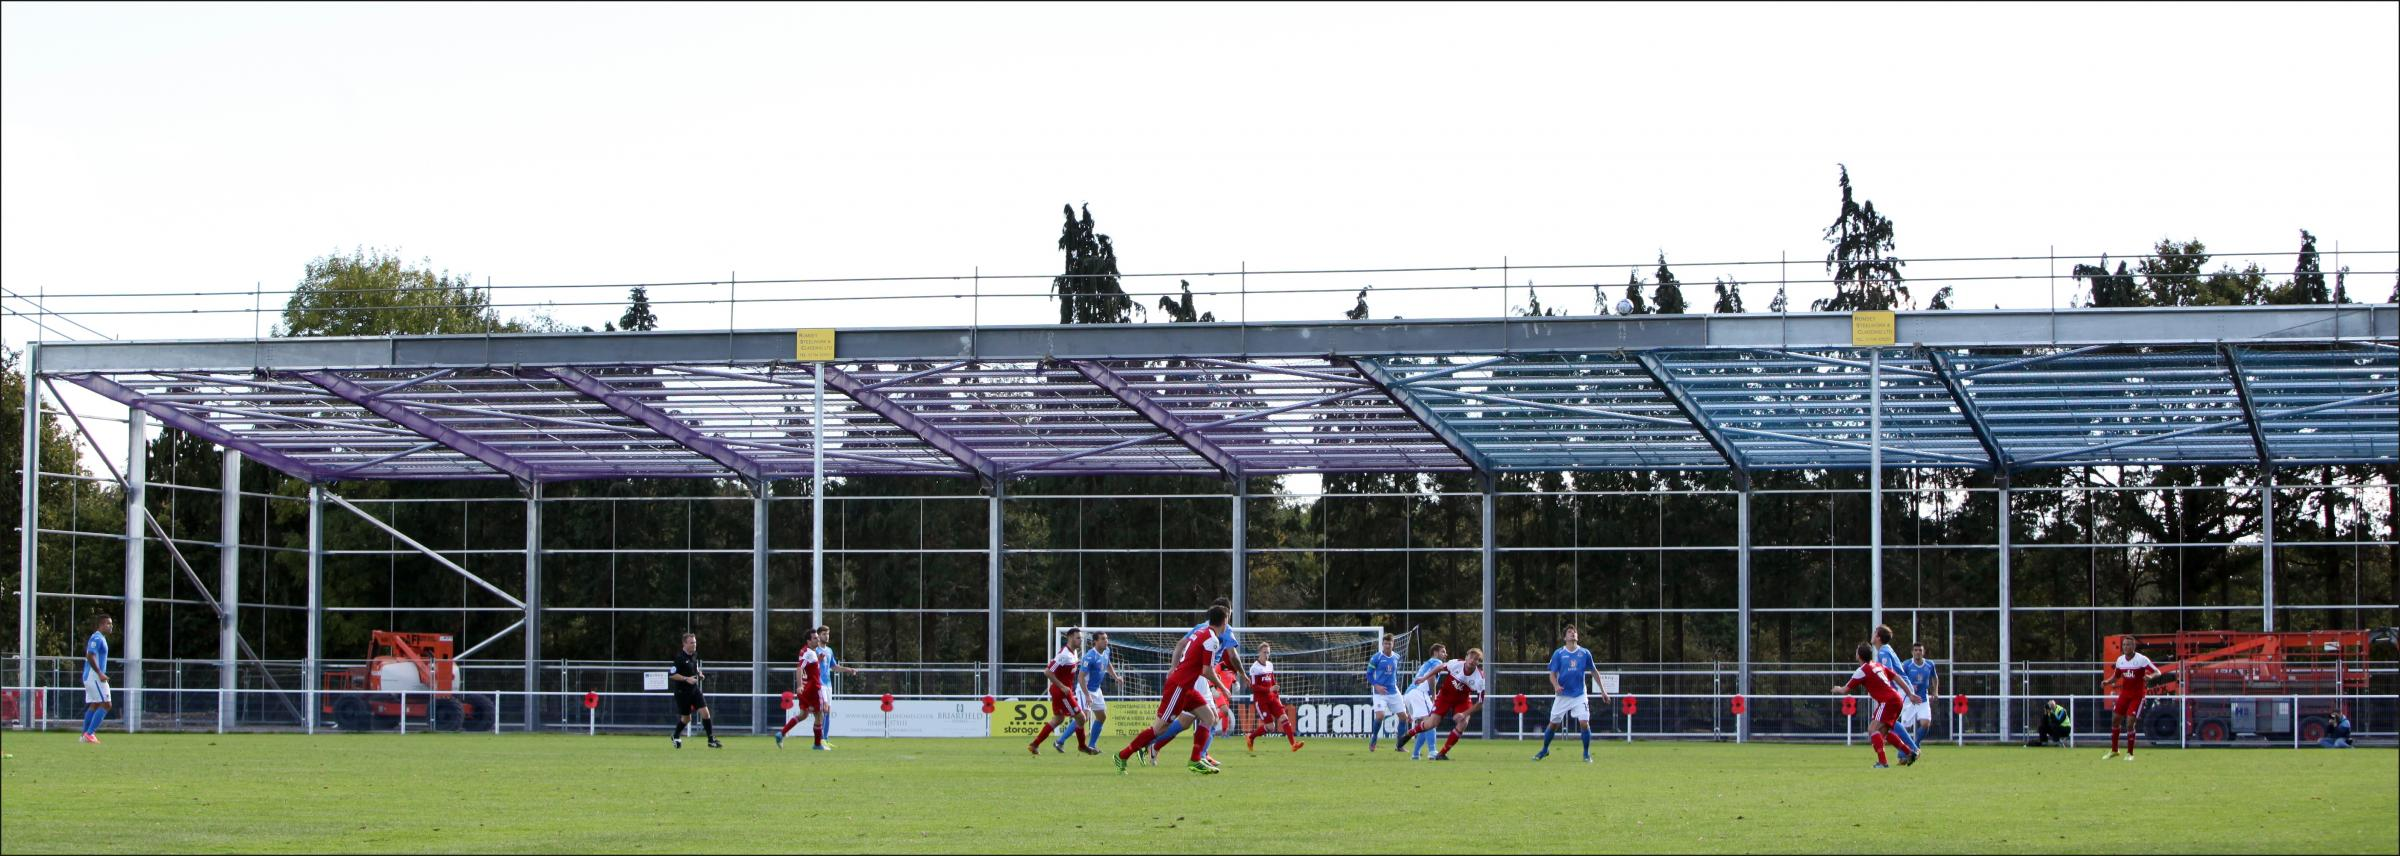 Eastleigh in action in front of their new stand at the Silverlake Stadium as it started to take shape during construction